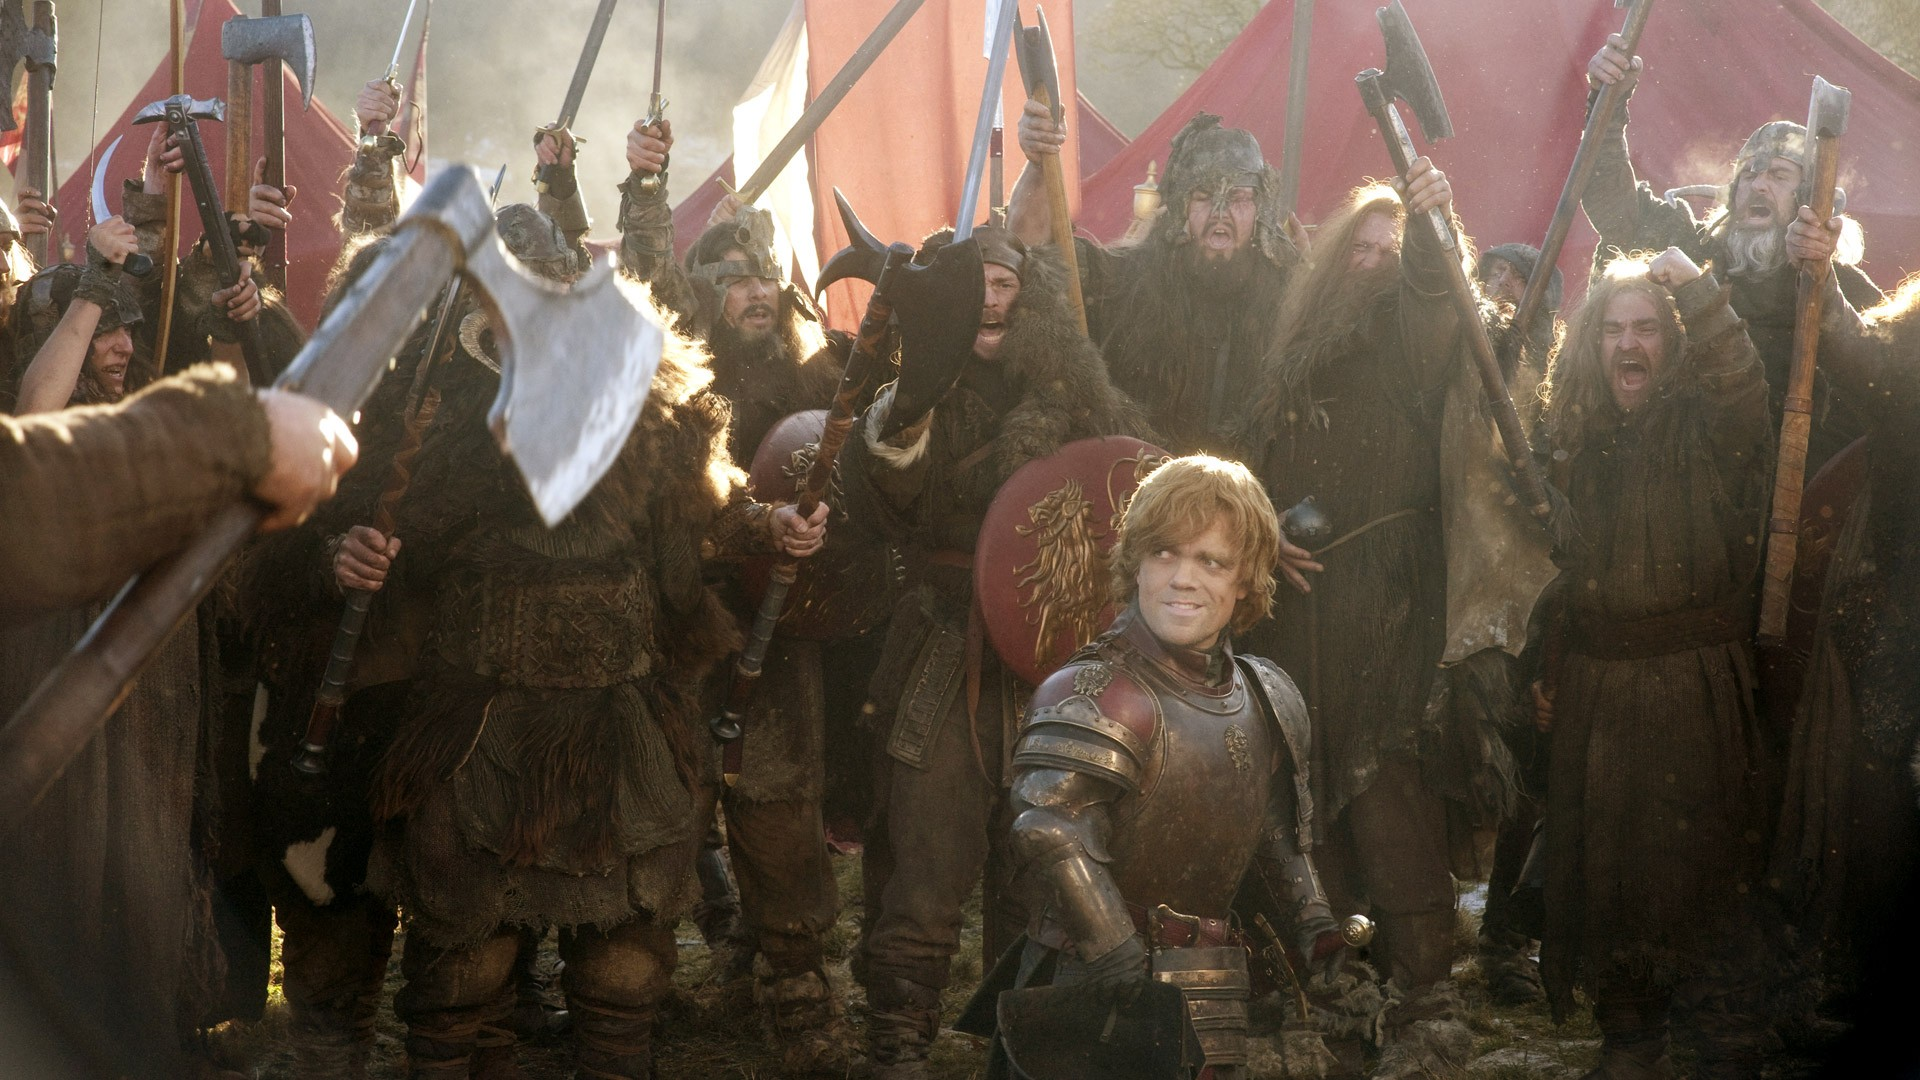 Tyrion Lannister (Peter Dinkleydzh) soldiers in the crowd of savages - the film Game of Thrones